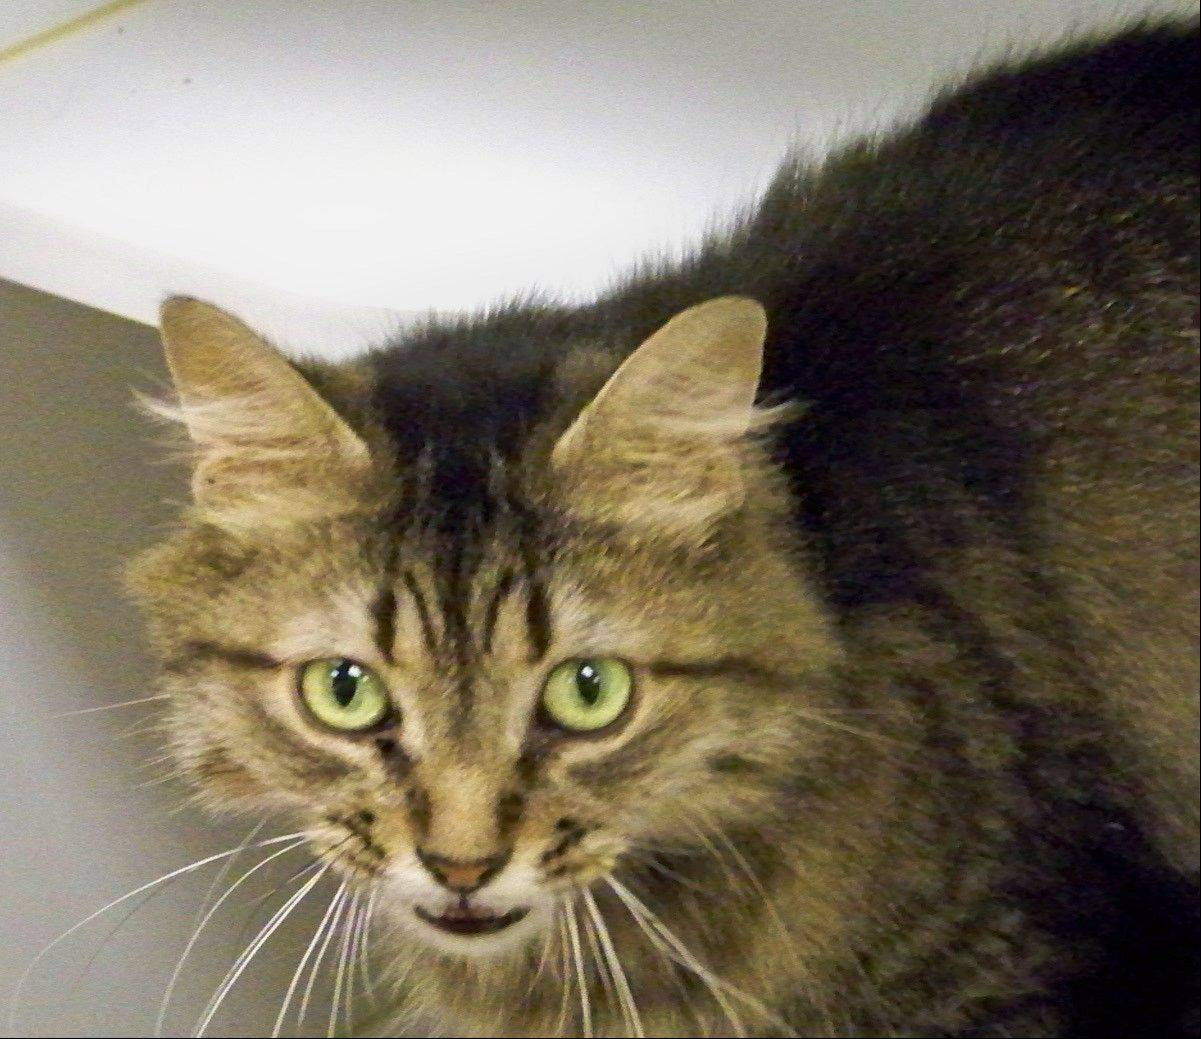 Rocky is a sweet medium-haired, male Maine coon cat with green eyes. Maine coon cats are known to be intelligent, playful, hold a hardy disposition and have a loving devotion to their human family.